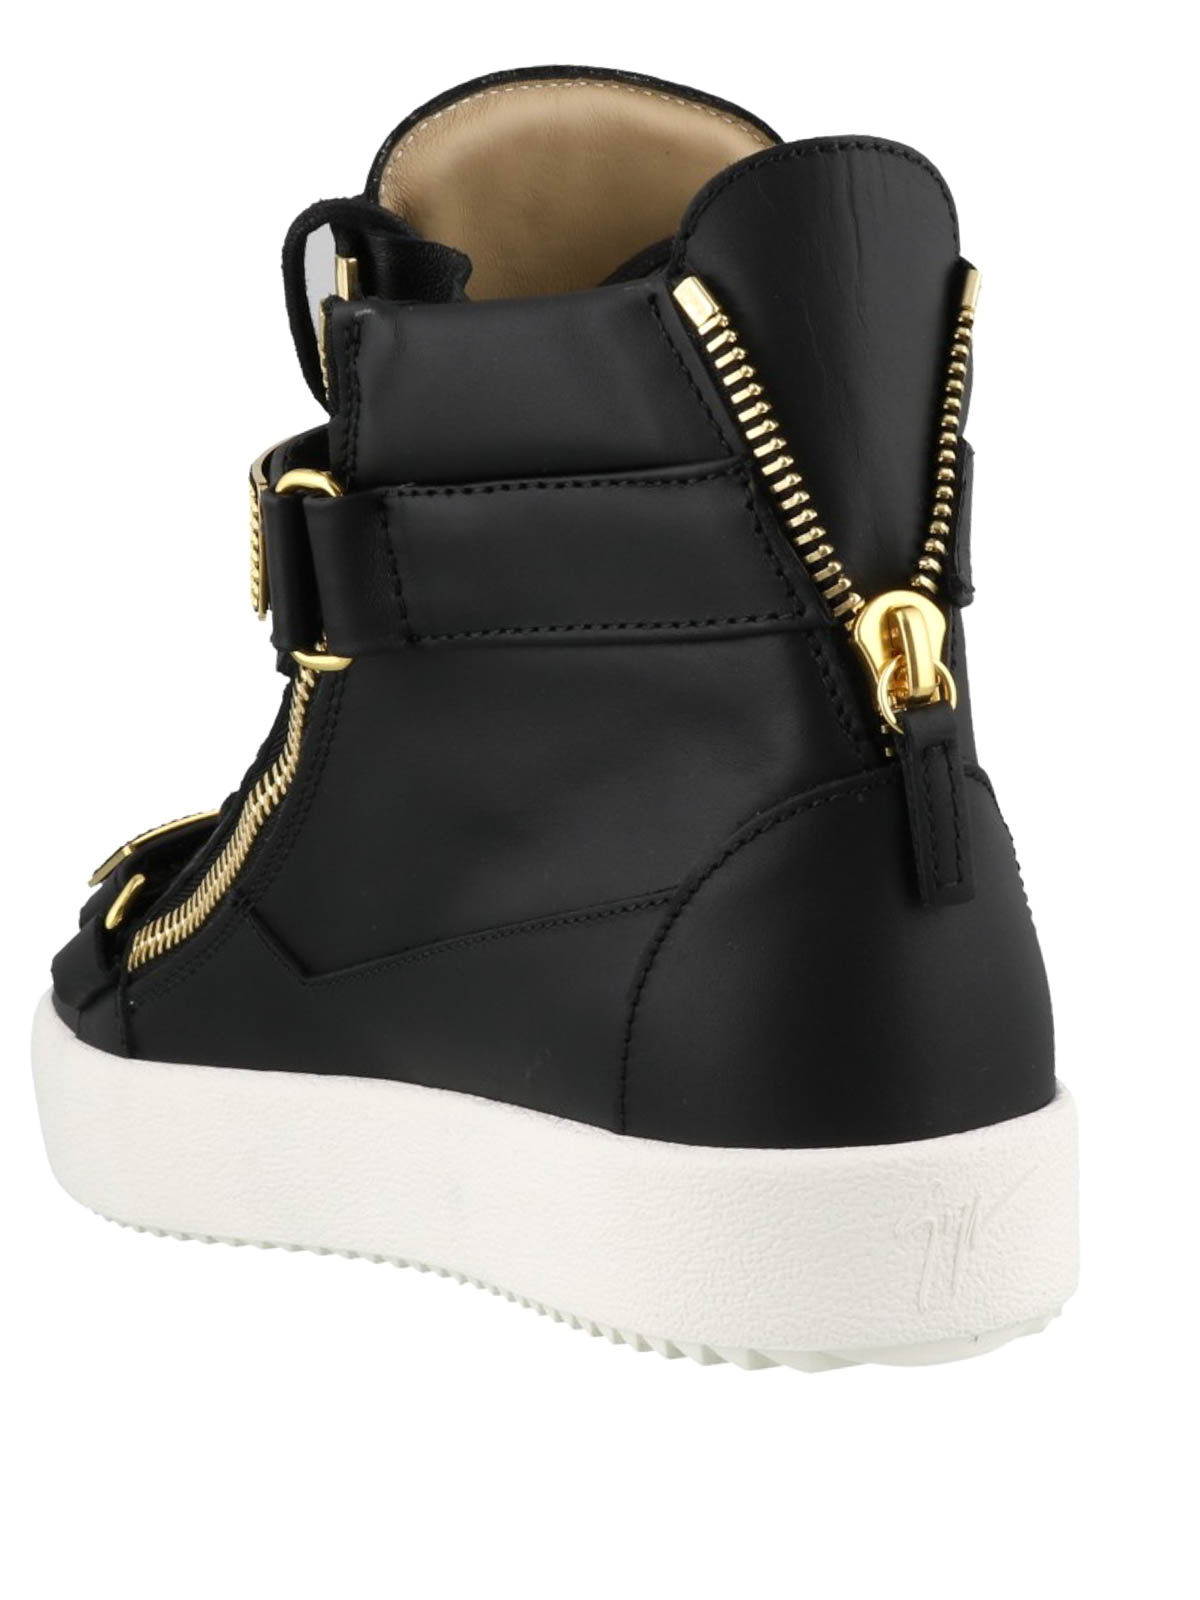 3119966498bb Giuseppe Zanotti - May London black and gold sneakers - trainers ...